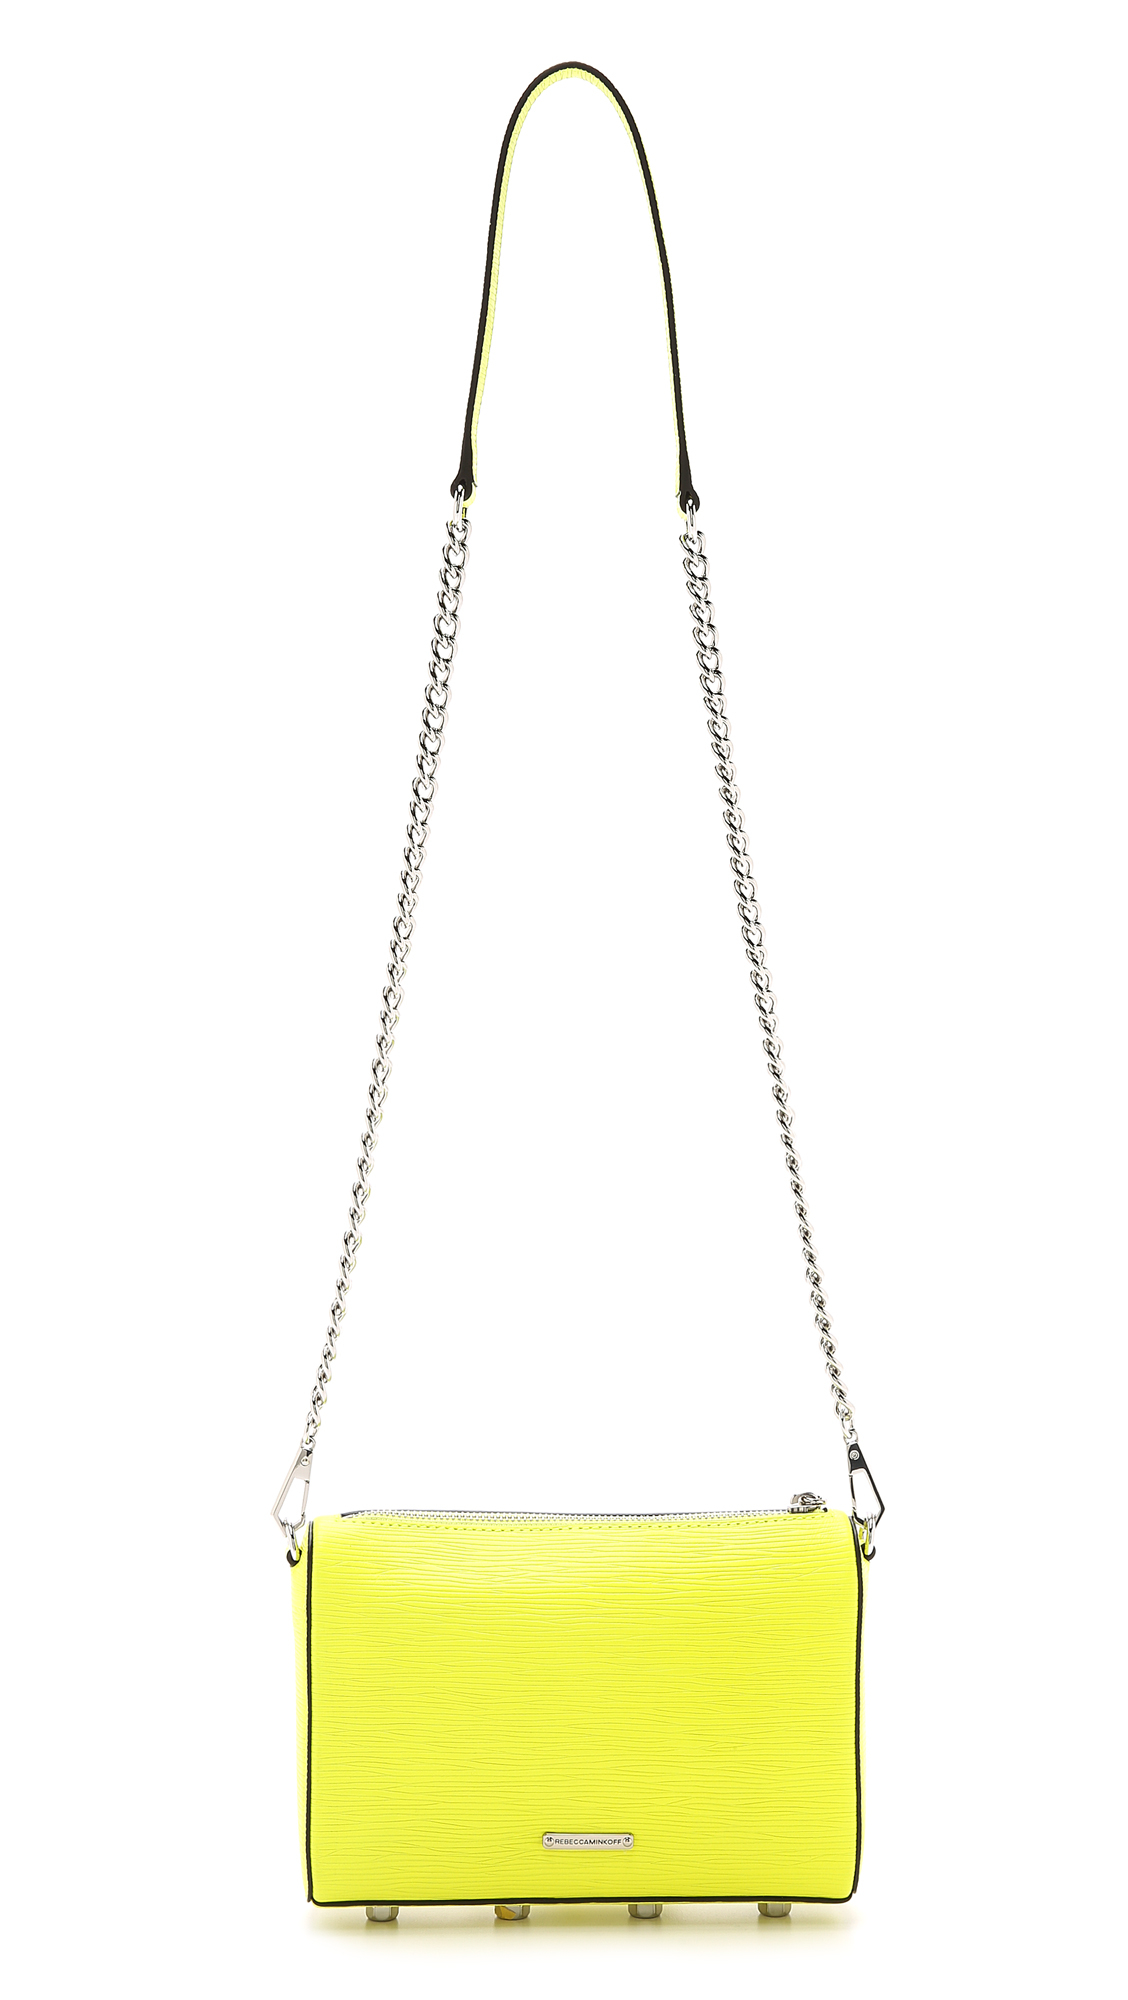 Rebecca Minkoff Avery Cross Body Bag - Electric Yellow